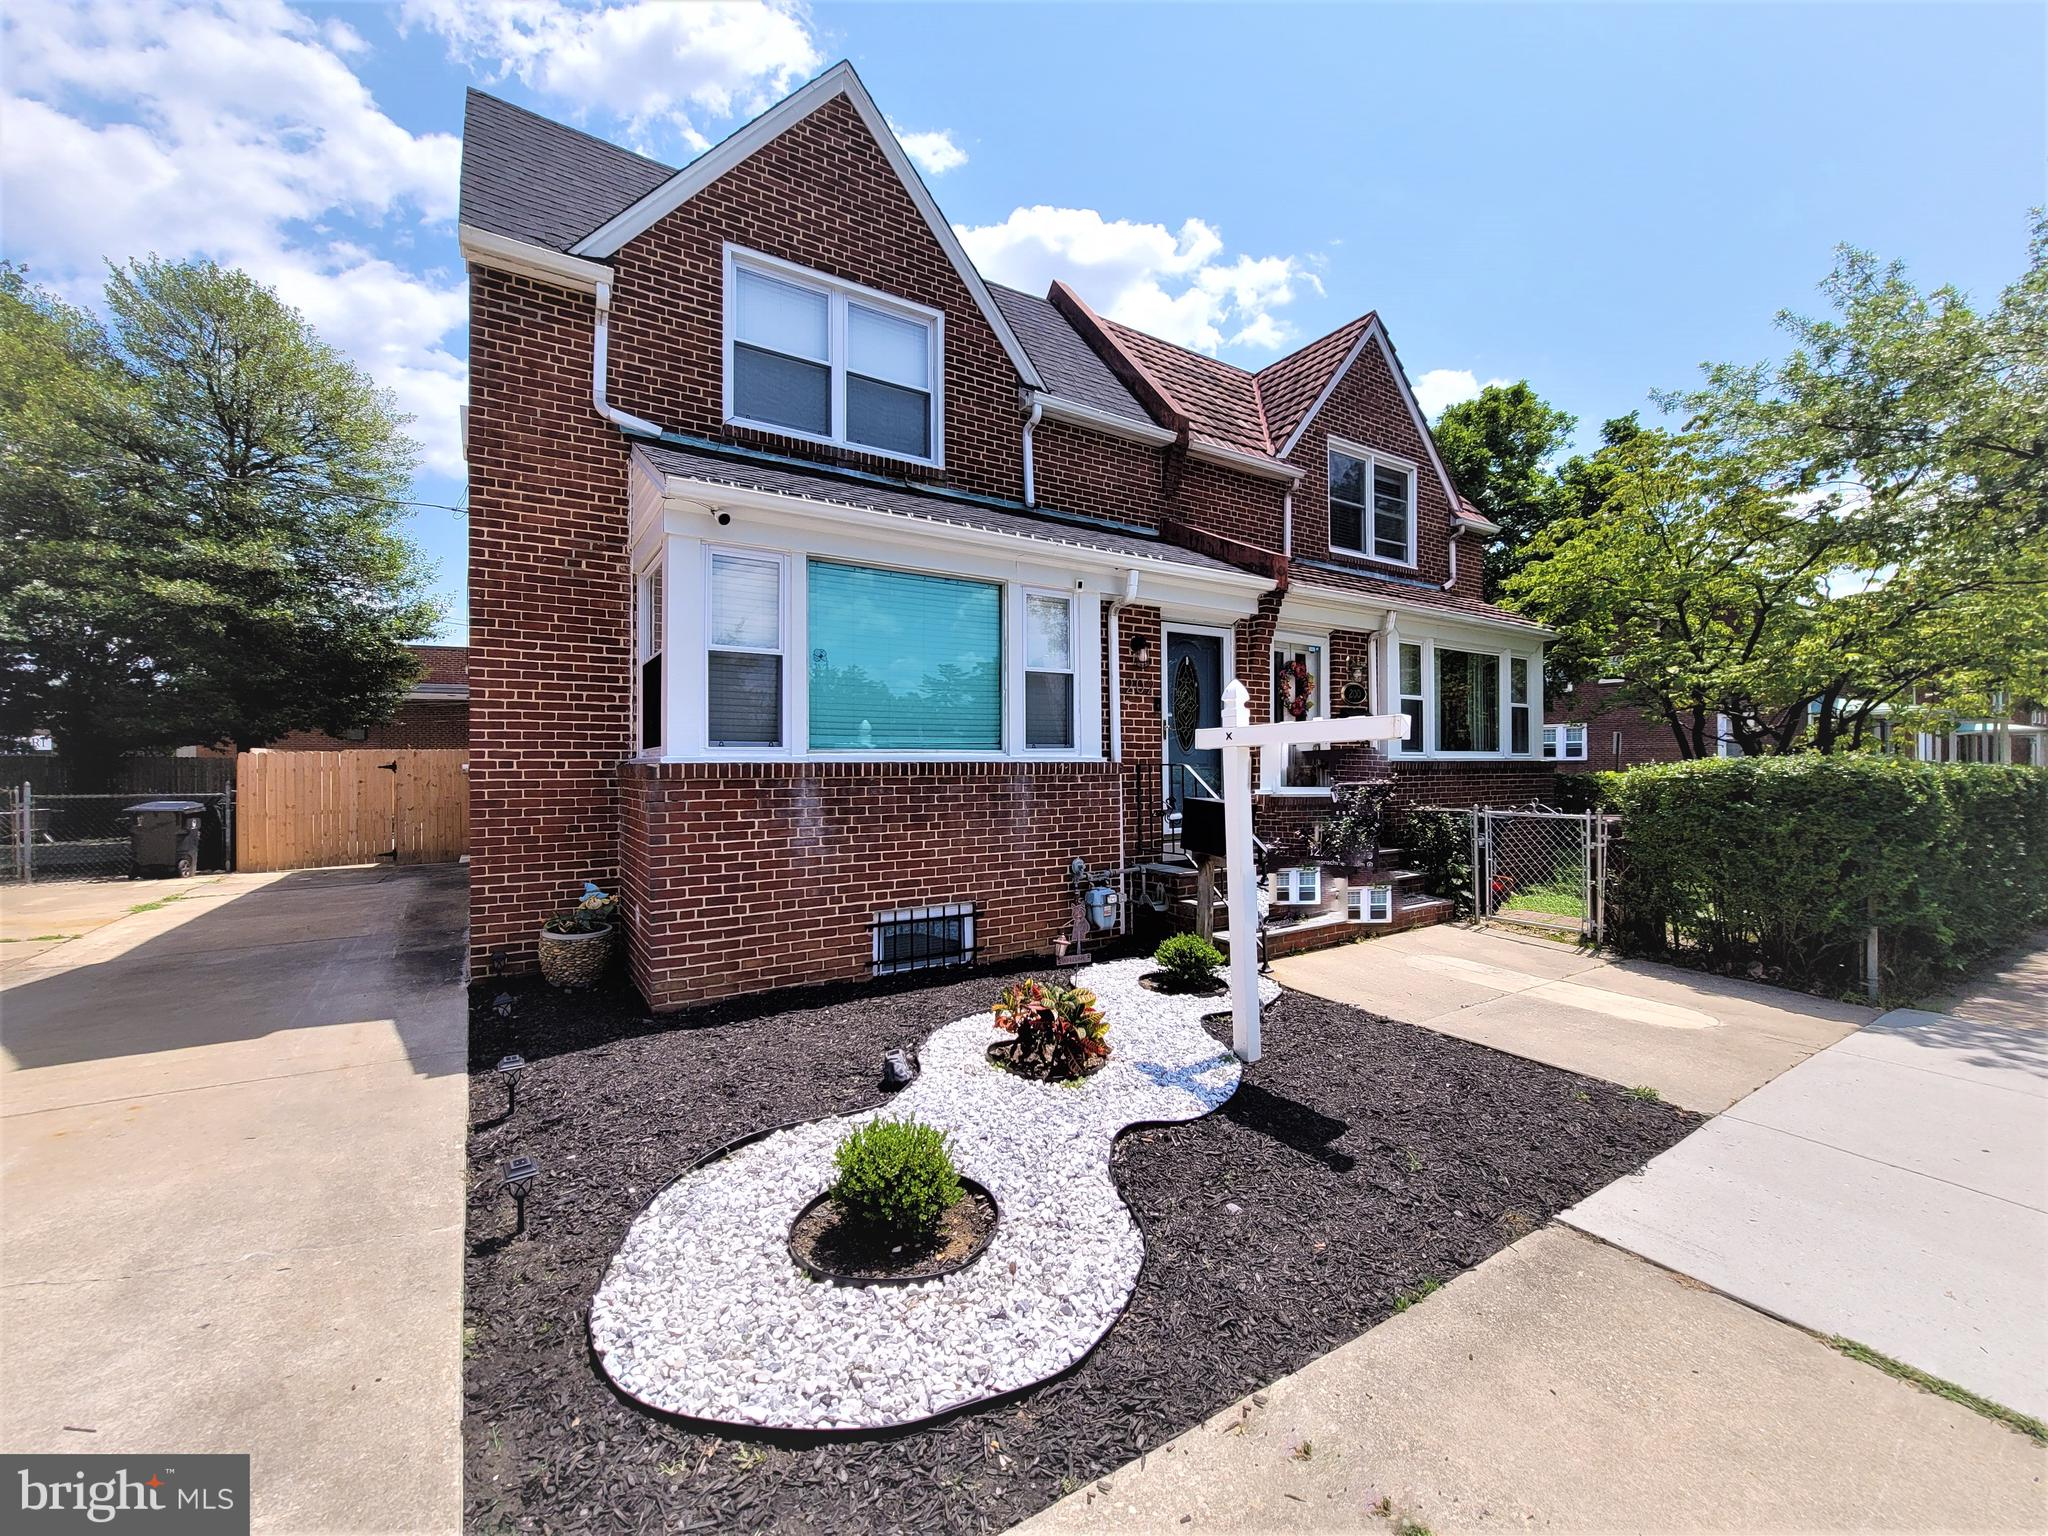 Gorgeous Bancroft Parkway brick twin.  This semi-detached charmer was throughly renovated in 2019 and has been lovingly maintained ever since.  Featuring 3 bedrooms, a full bath and two (2) half baths with a fantastic open floor plan and tons of updates.  The 2019 renovation included new roof, new windows, new HVAC, gourmet kitchen with granite tops and stainless steel appliances, recessed lighting, ceiling  new flooring throughout, custom paint and trim and so much more. Large finished area in the basement with 1/2 bath, tons of additional storage and an outside entrance.  Off the kitchen is an enlosed porch leading to the newly fenced in back yard.  Nice long driveway and off street parking as well. This home shows like a model and sits right on beautiful Bancroft Parkway.  Put it on your tour today!